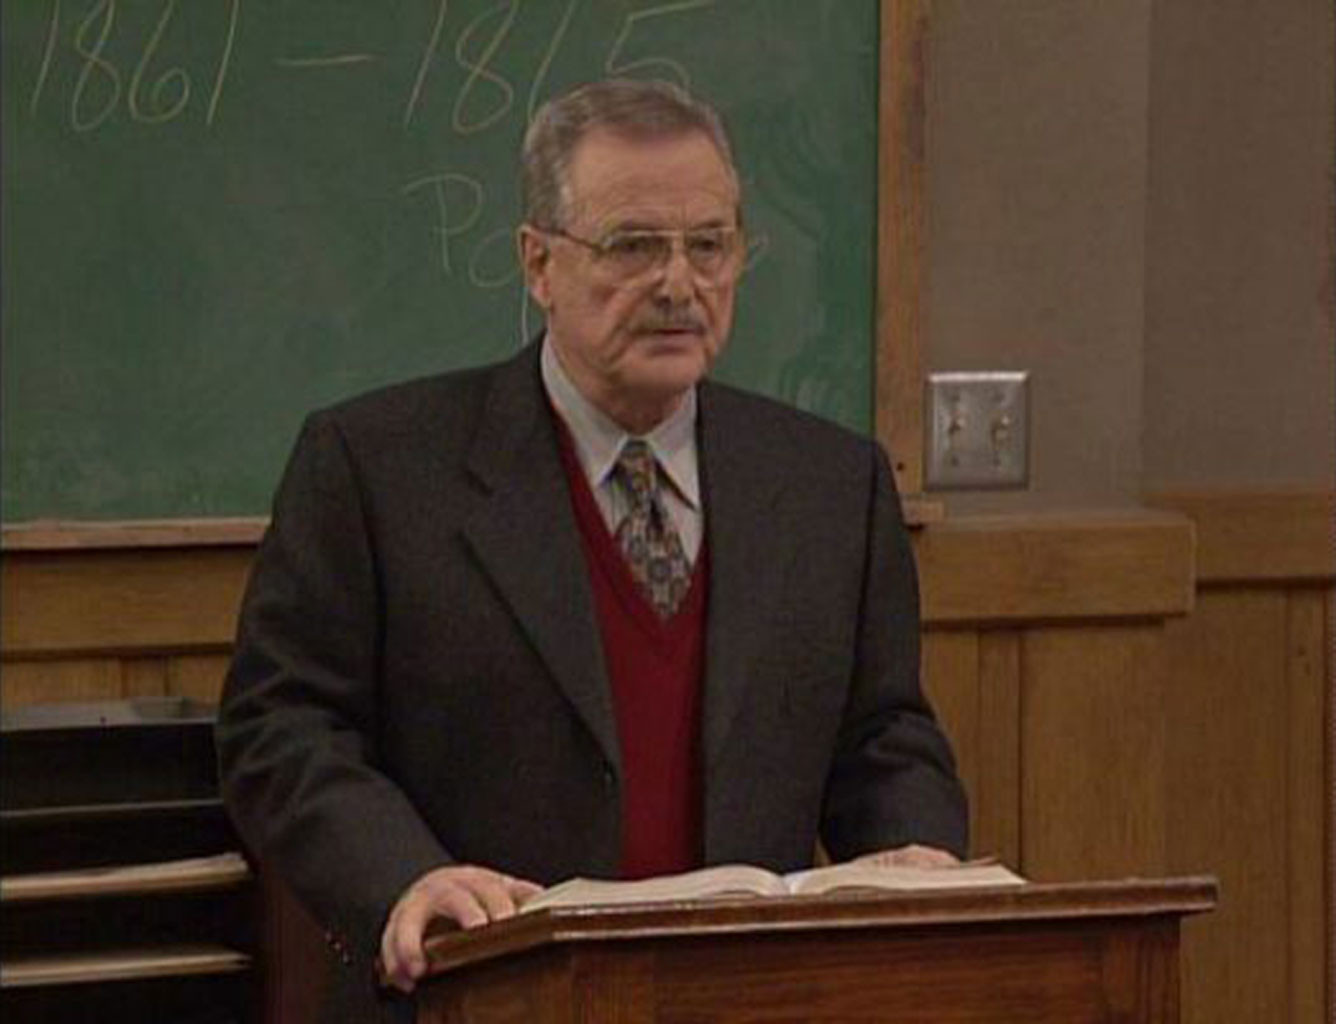 Mr. Feeny, Boy Meets World